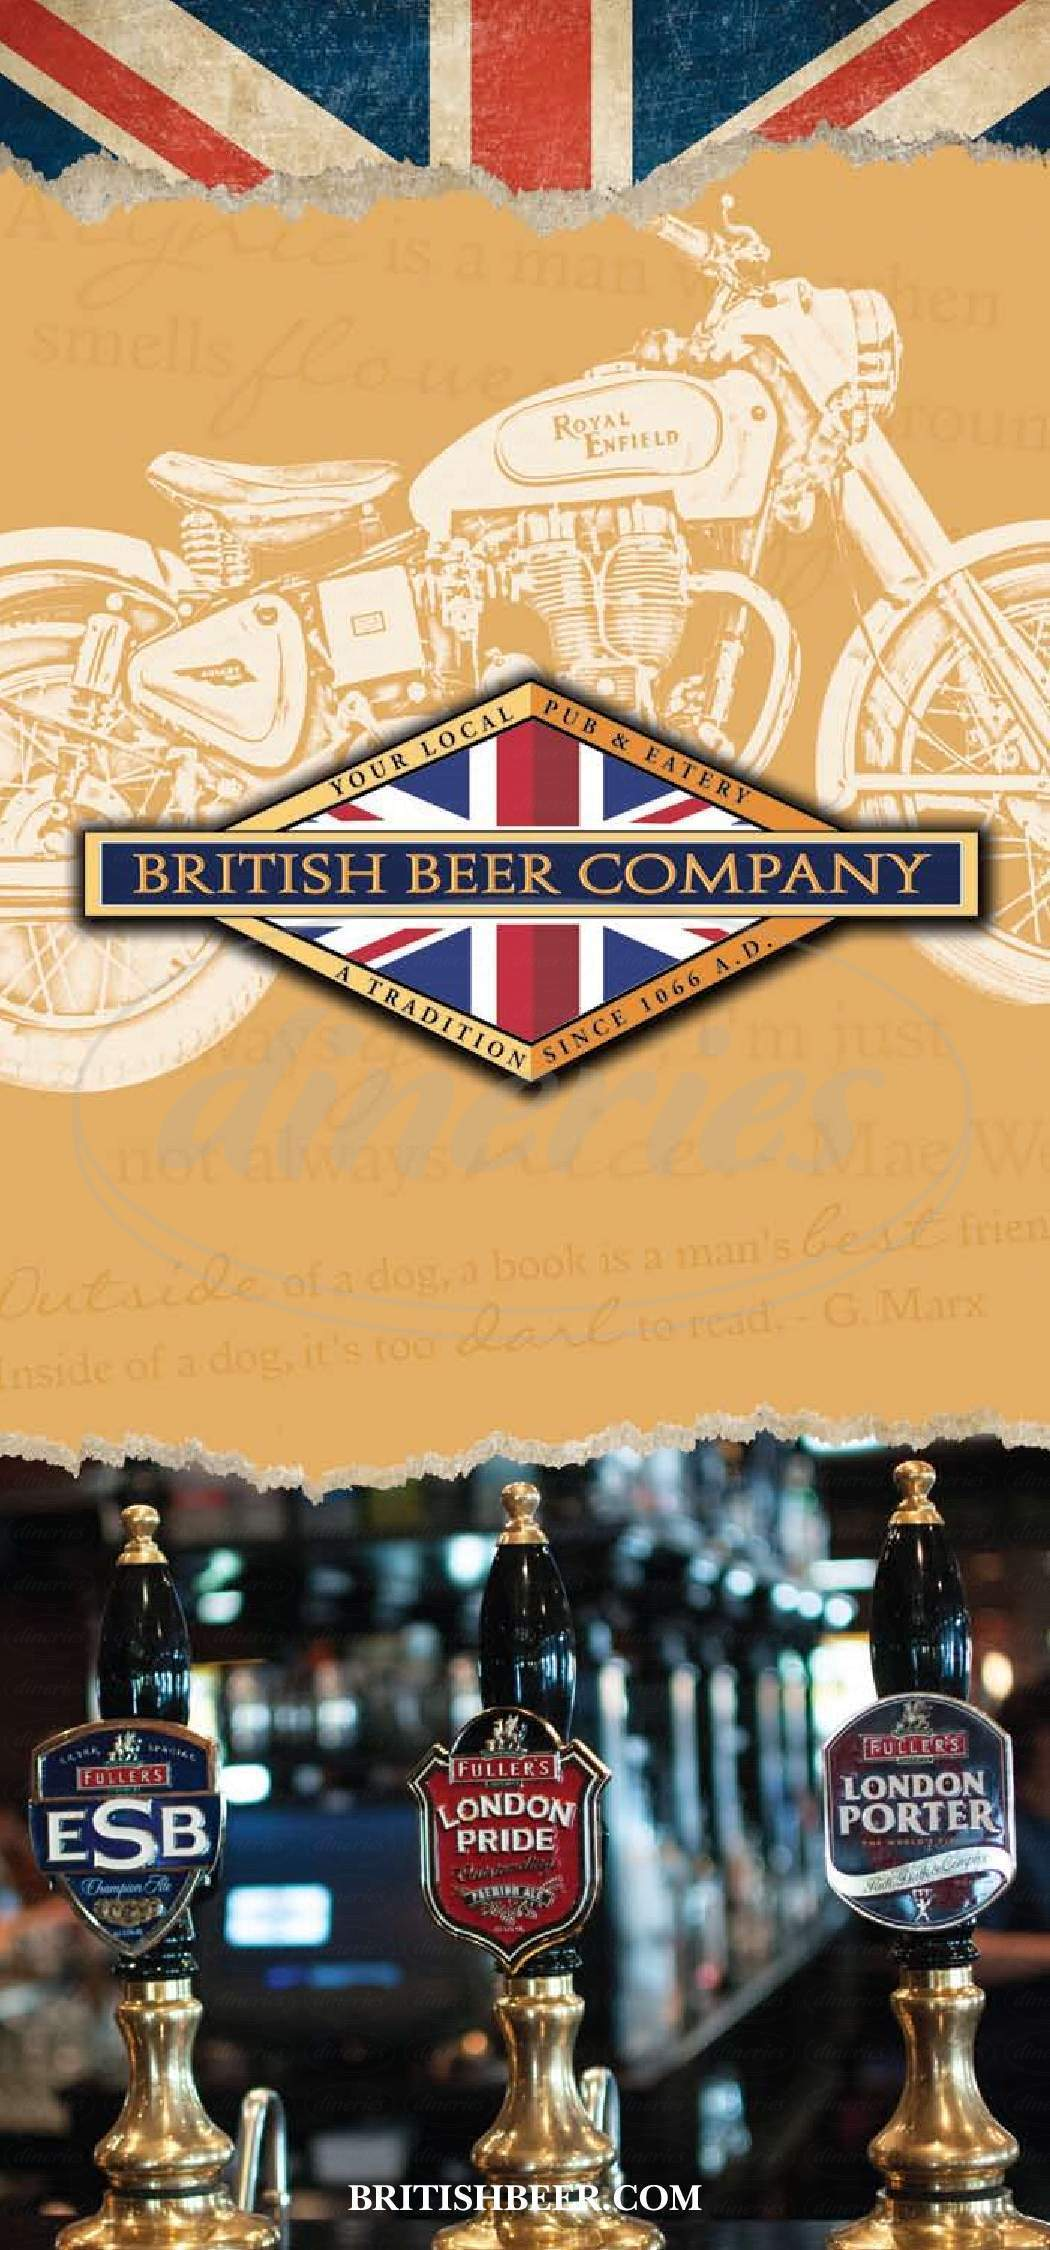 menu for The British Beer Company